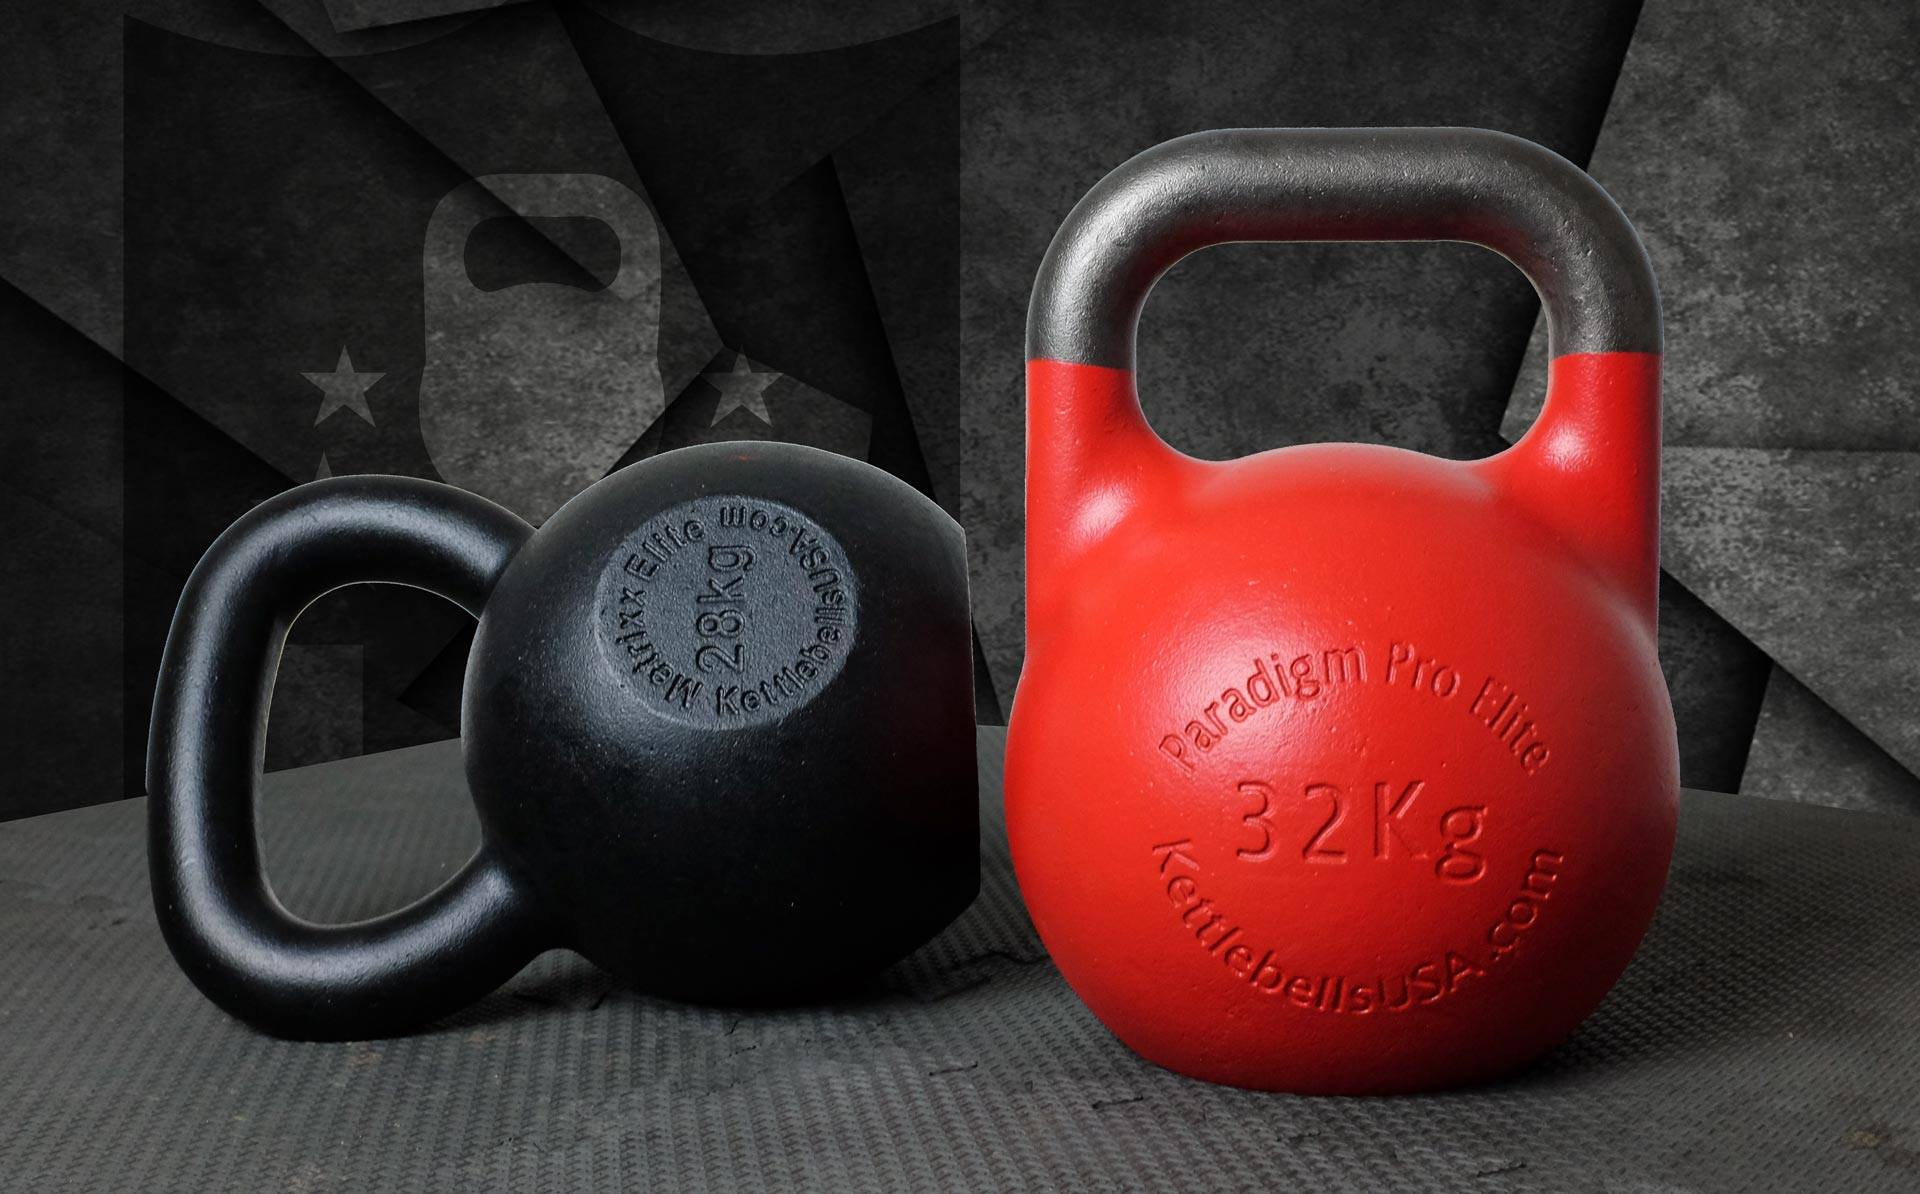 Kettlebells USA® Engineers The World's Finest Cast Iron E-Coat Kettlebell and Steel Competition Kettlebells - ISO 9001 Quality - Free Shipping - Discount Kettlebells